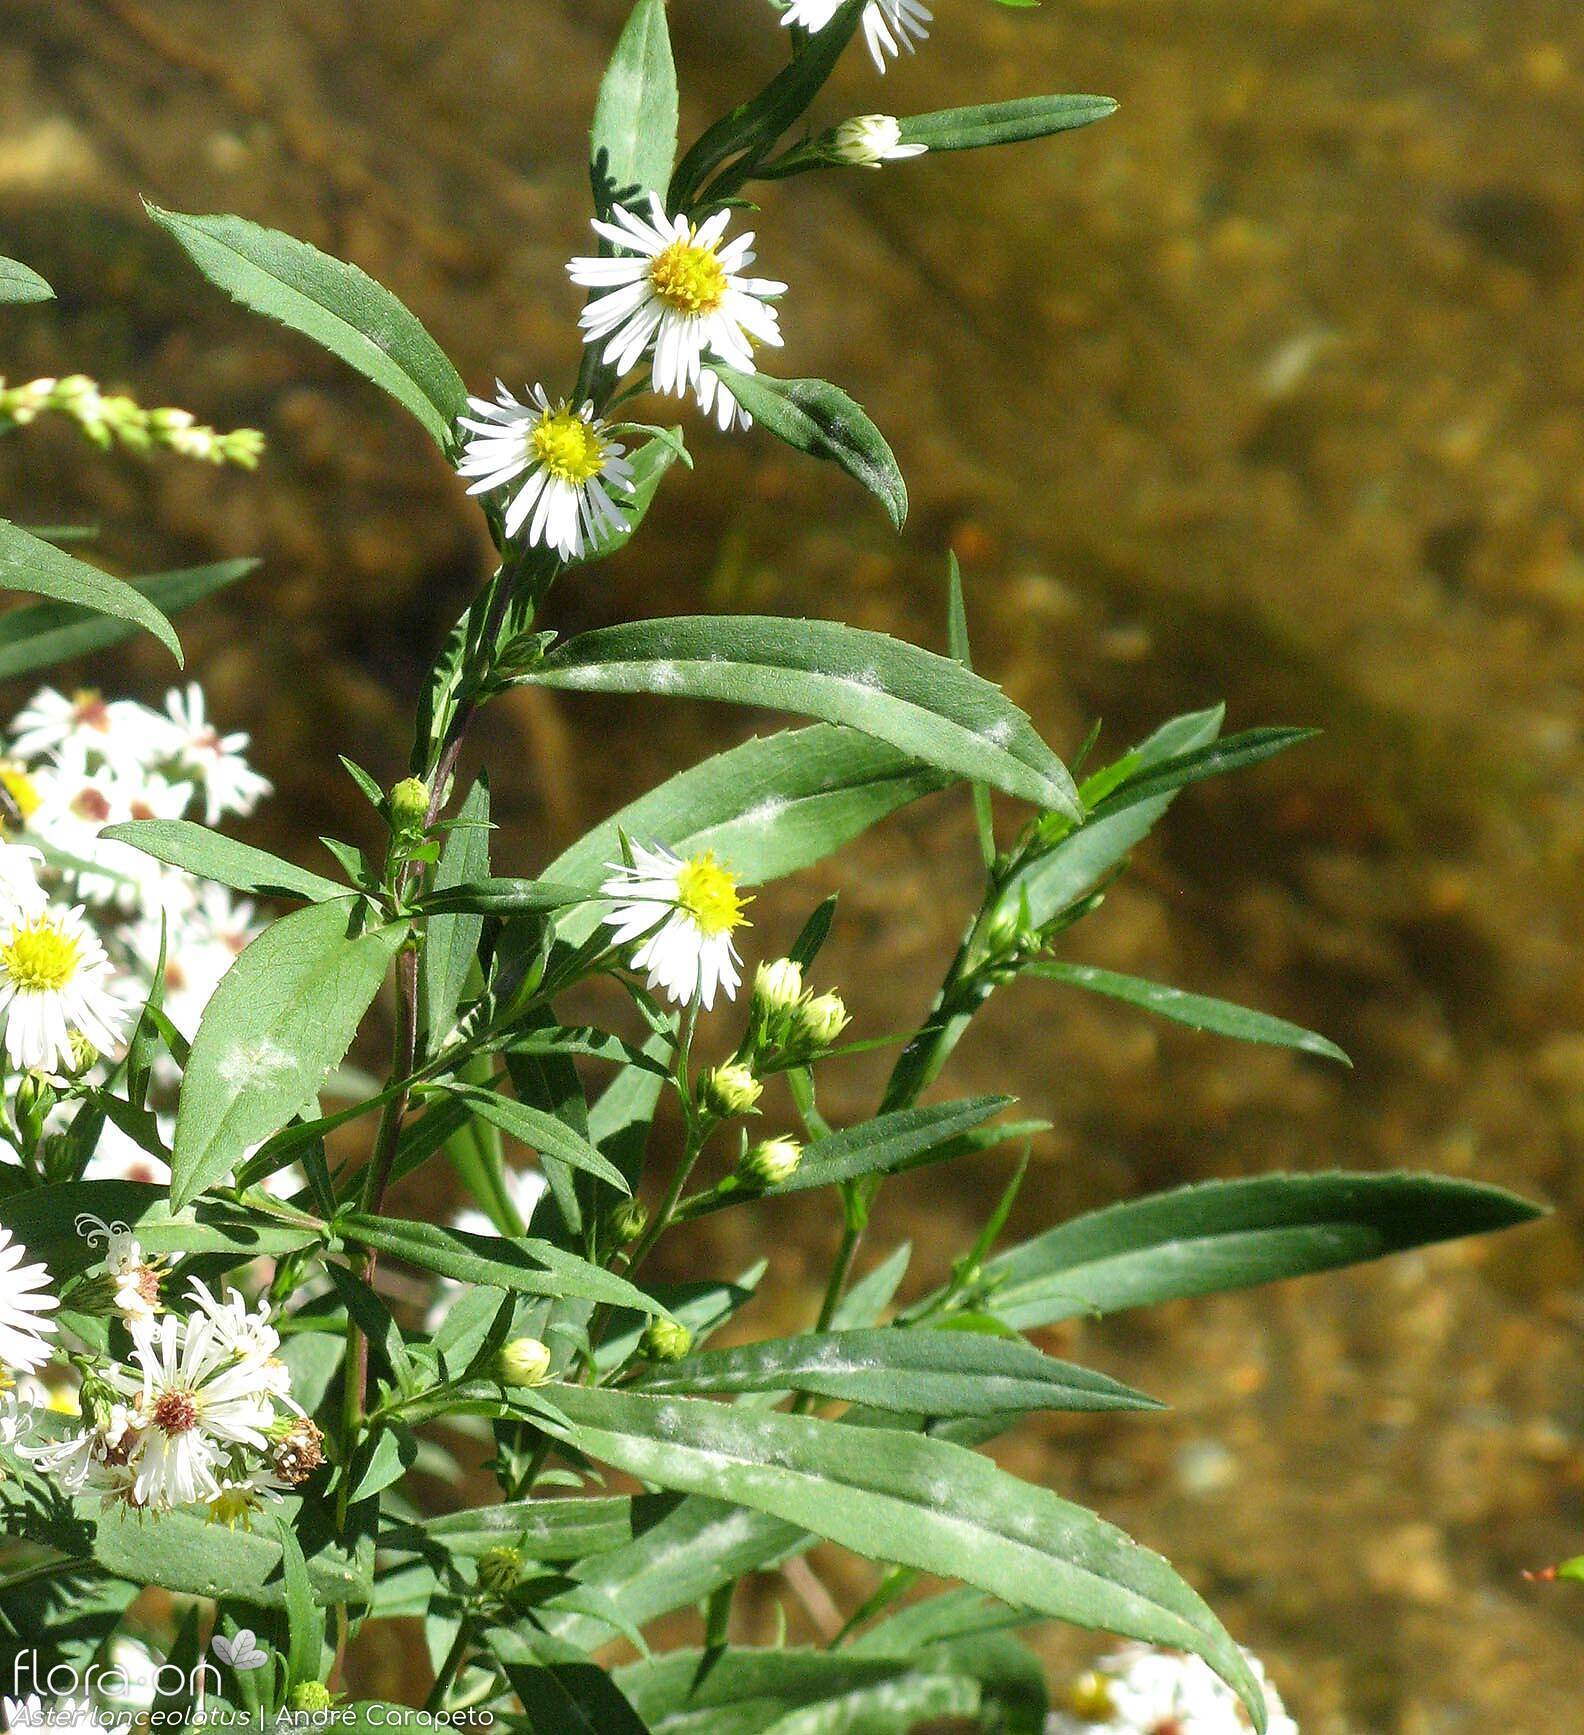 Aster lanceolatus - Folha (geral) | André Carapeto; CC BY-NC 4.0